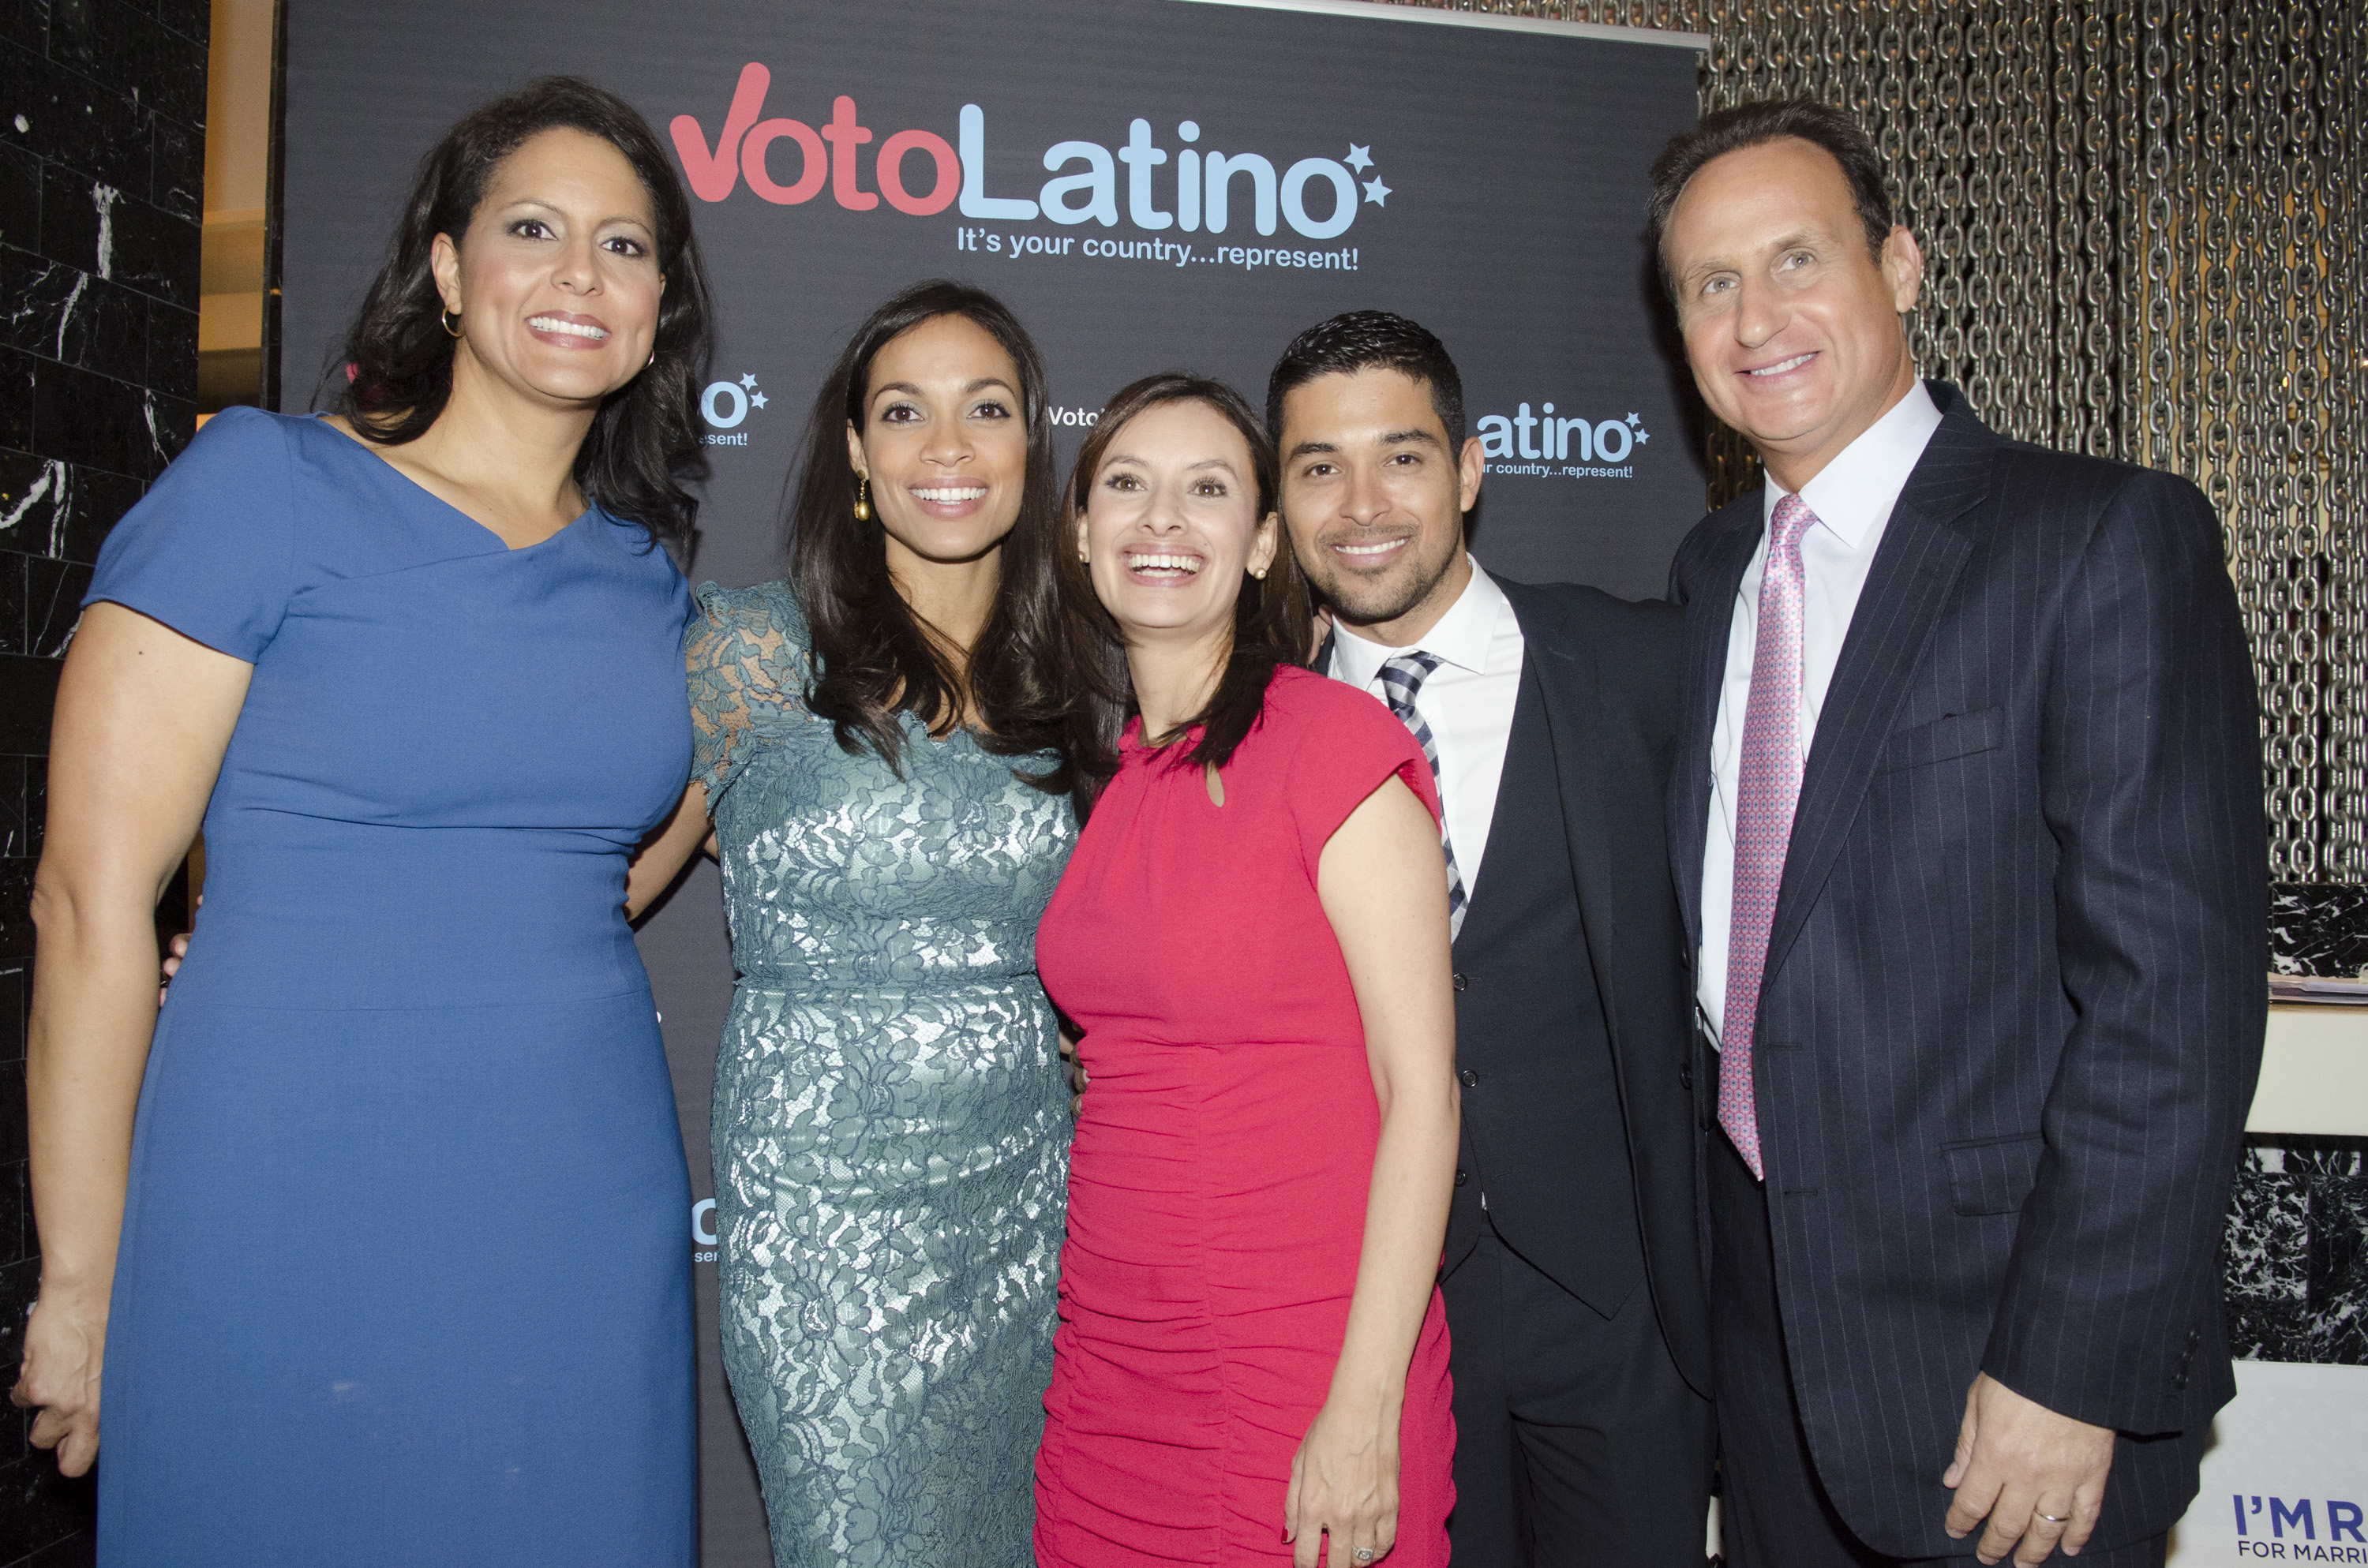 Rosario Dawson and Wilmer Valderrama posed for pictures with Voto Latino board members and journalists Sunday.